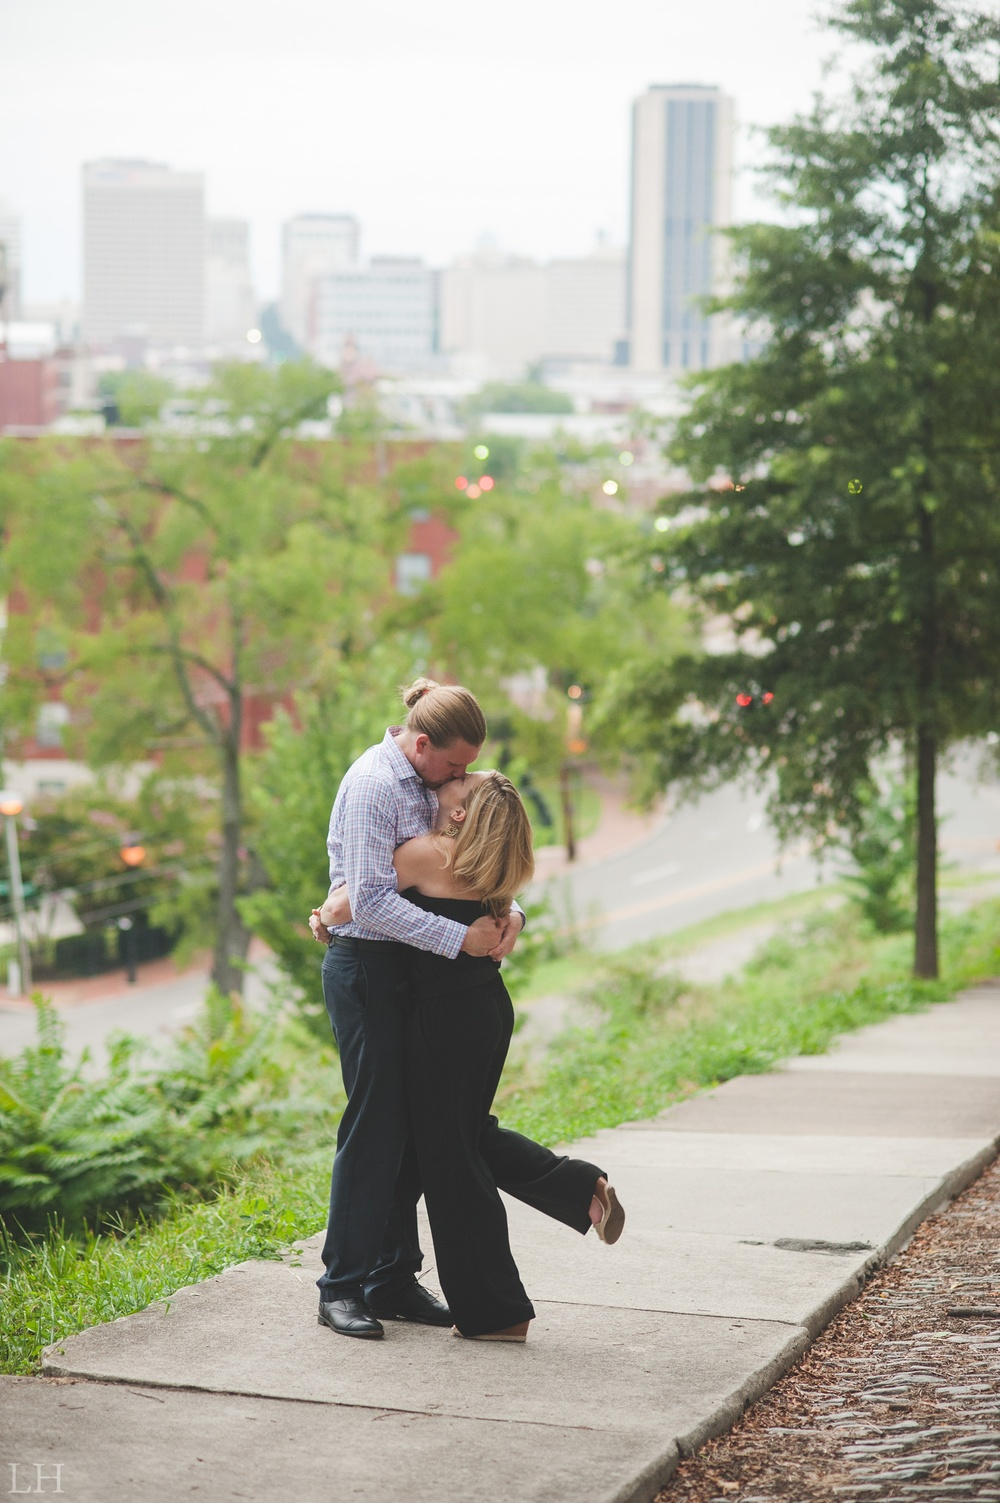 DowntownRichmondWaterwayEngagementSession125.jpg